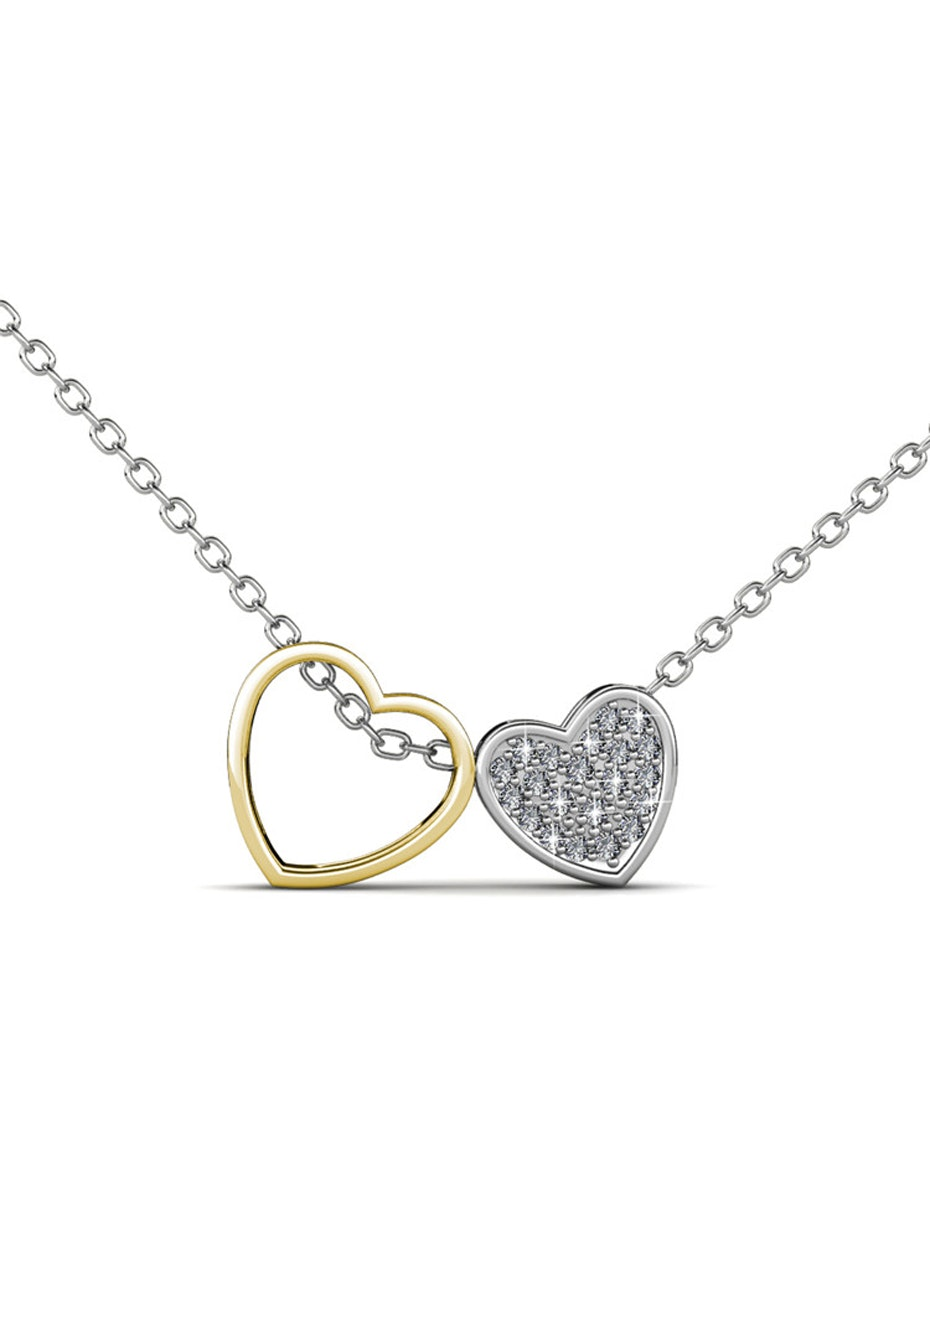 Two Tone Heart Pendant Necklace Embellished with Crystals from Swarovski